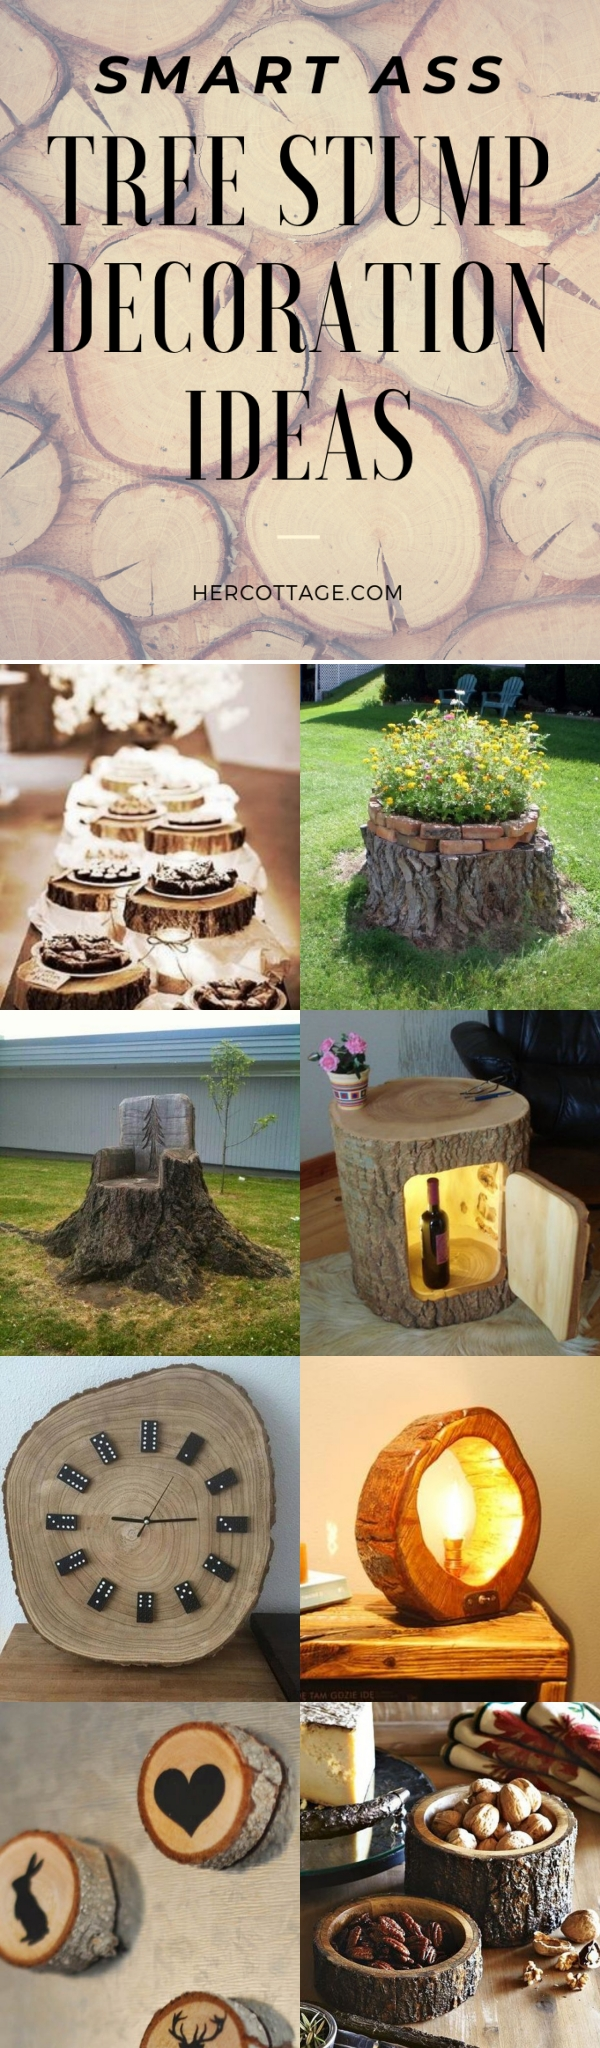 Smart-Ass-Tree-Stump-Decoration-Ideas